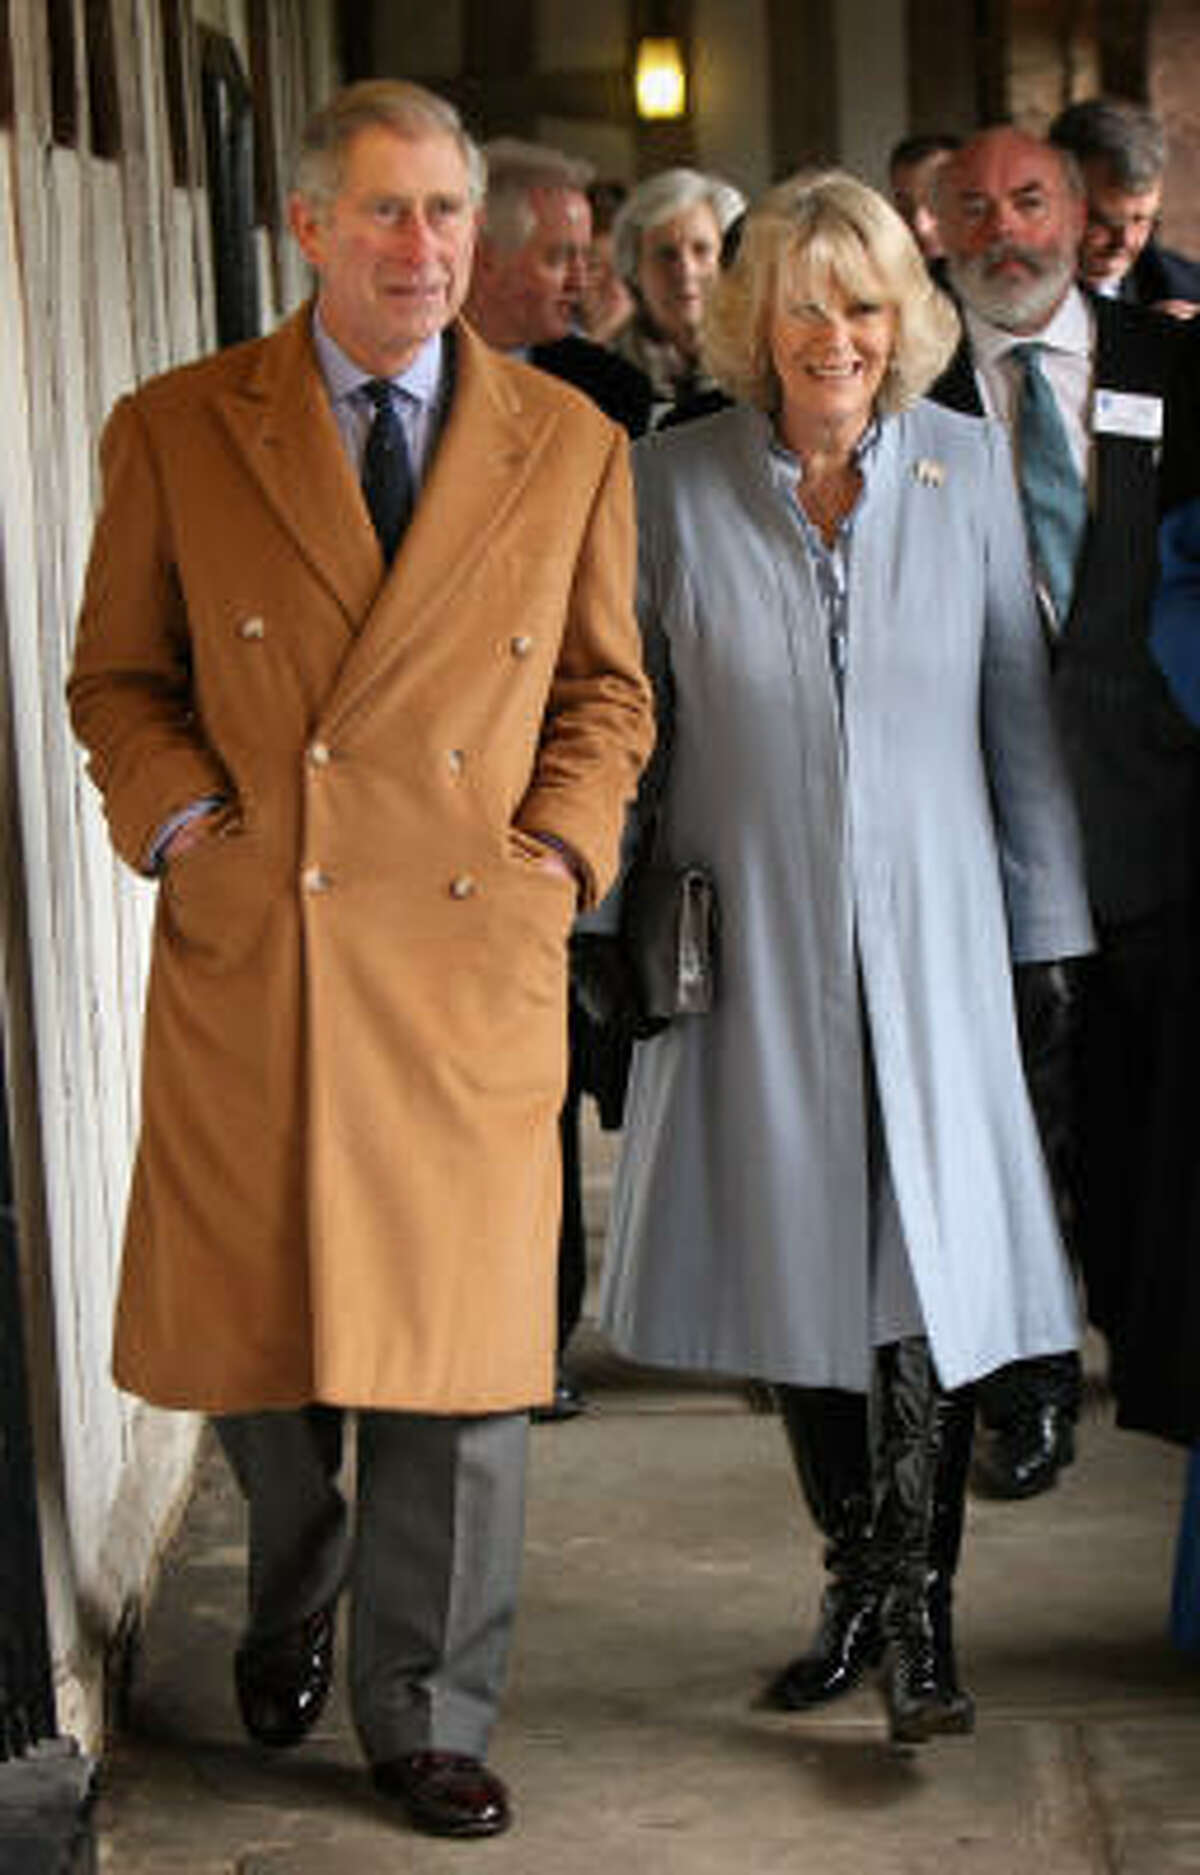 Prince Charles, Prince of Wales and Camilla, Duchess of Cornwall, had a lengthy affair before the prince finally was divorced from Princess Diana.